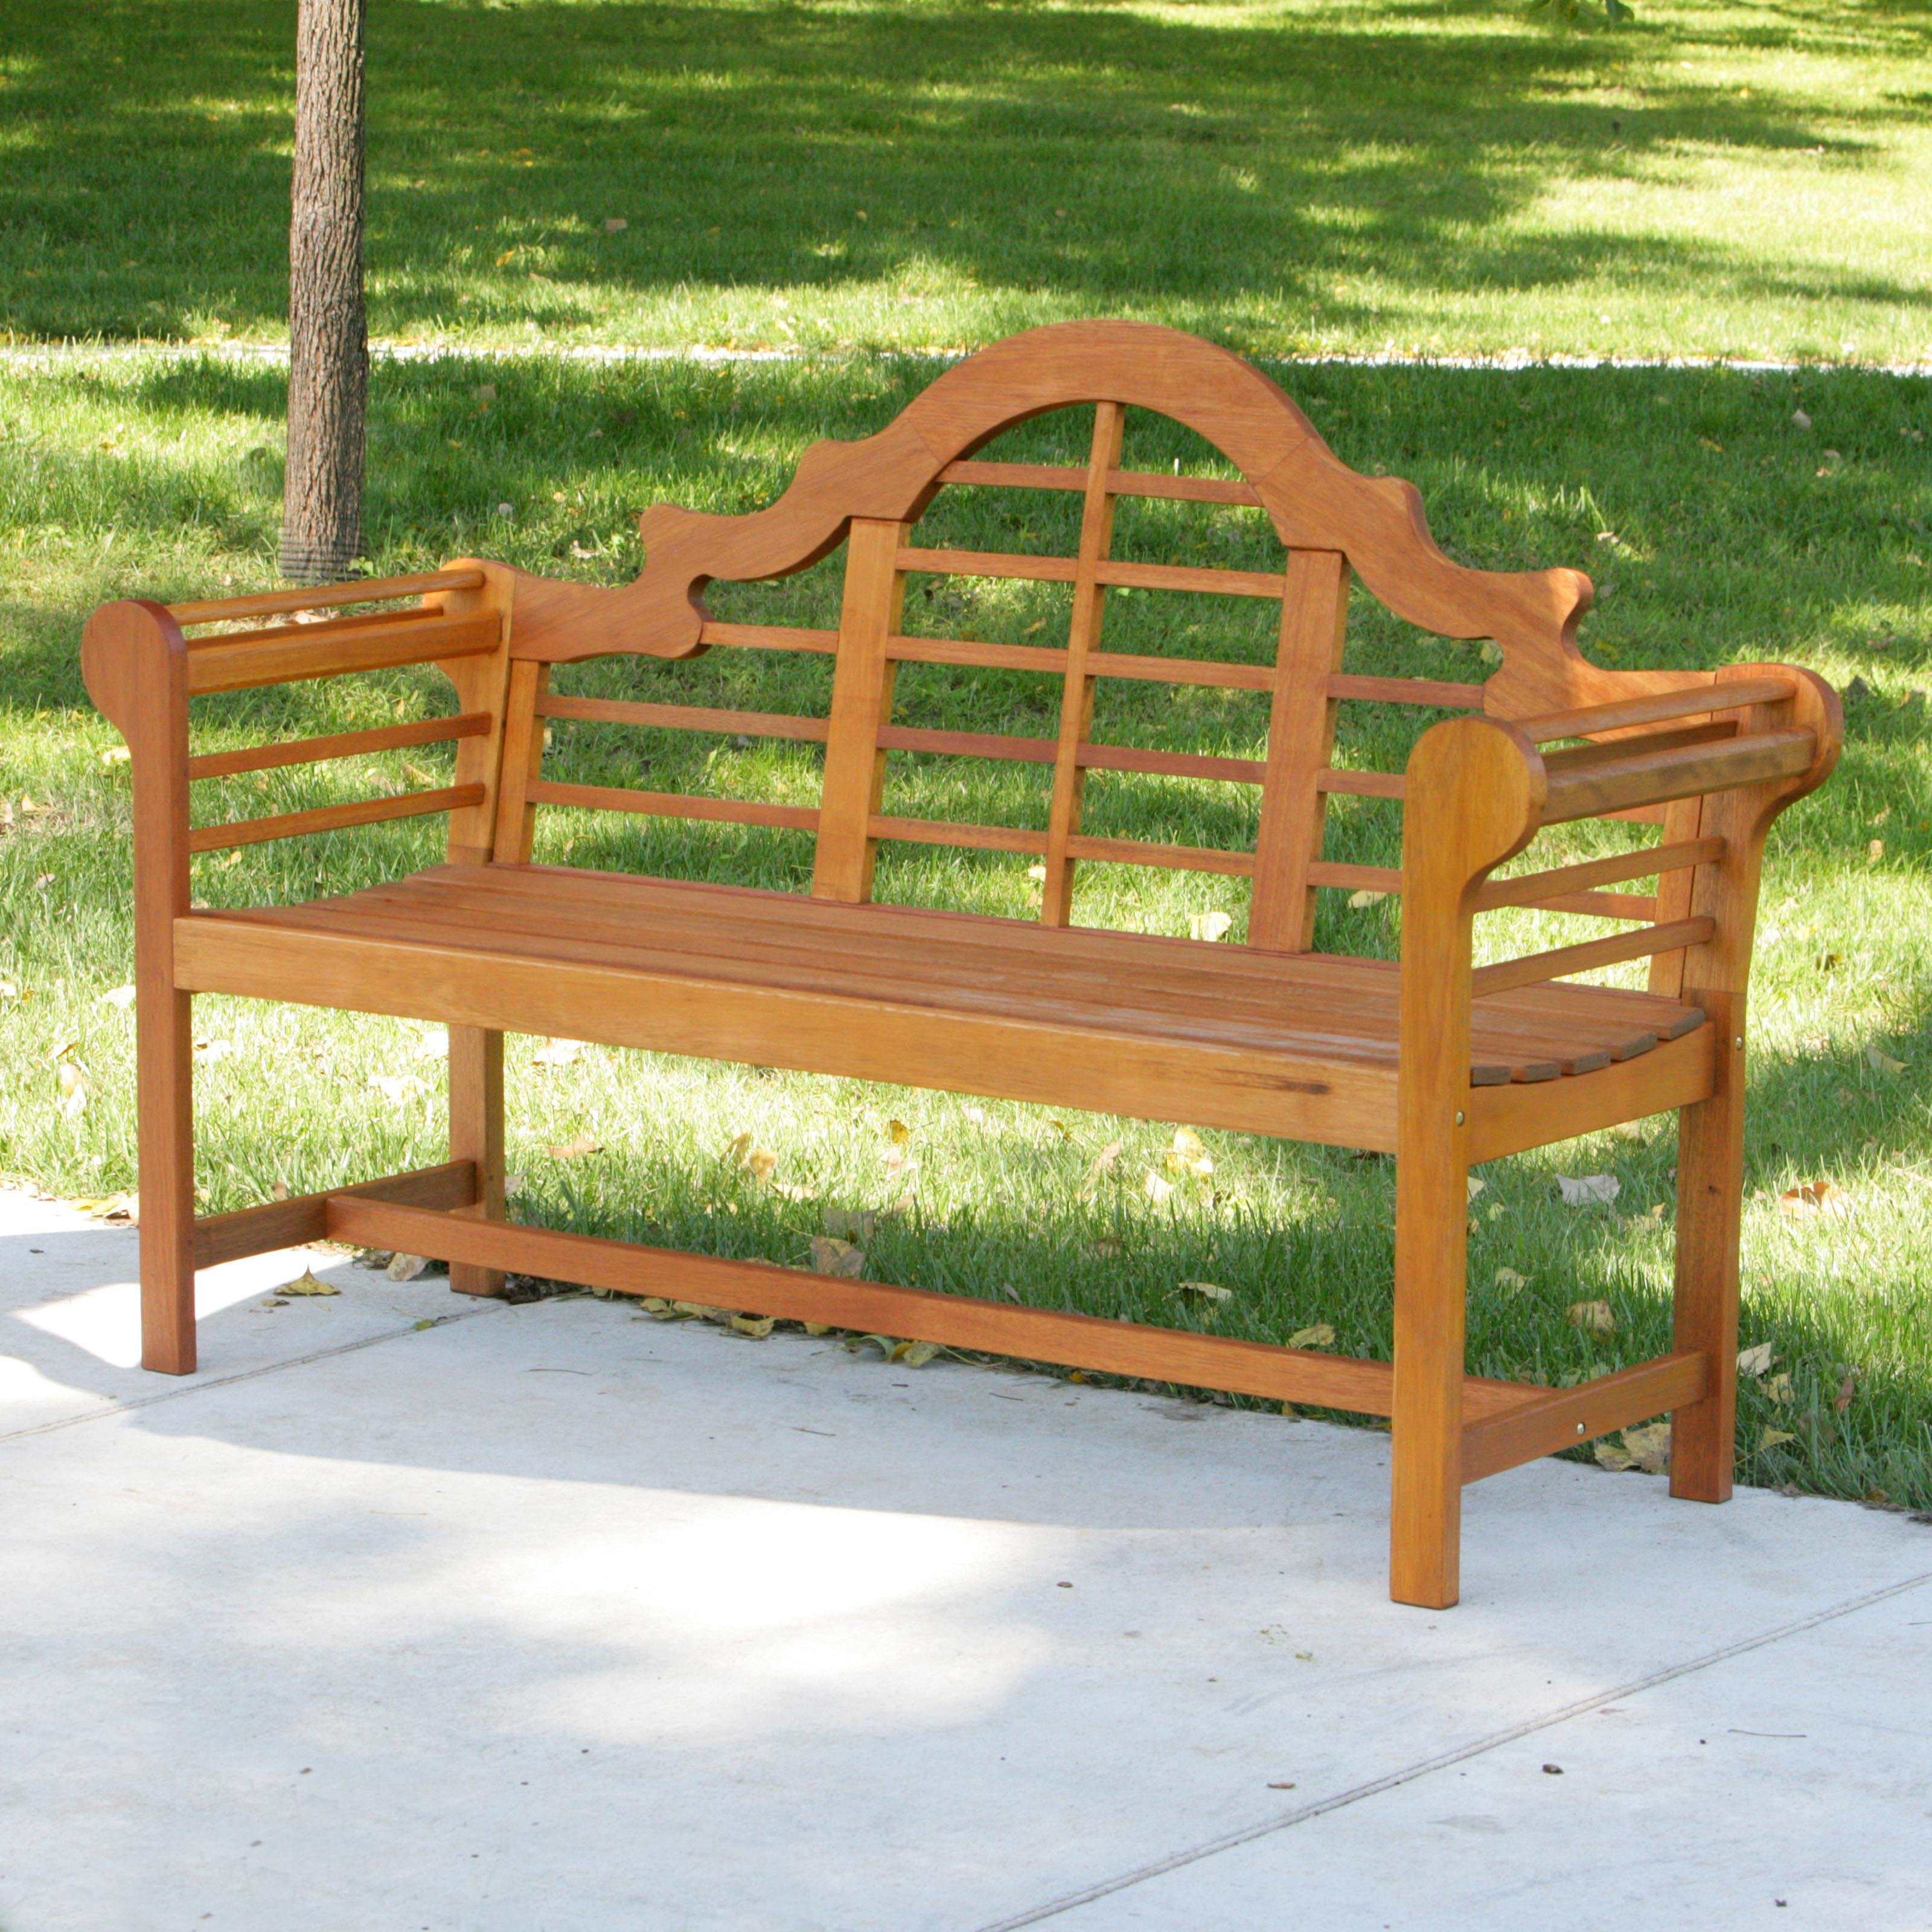 Achla Designs Lutyens Eucalyptus Wood Garden Bench - 4.5 ft.